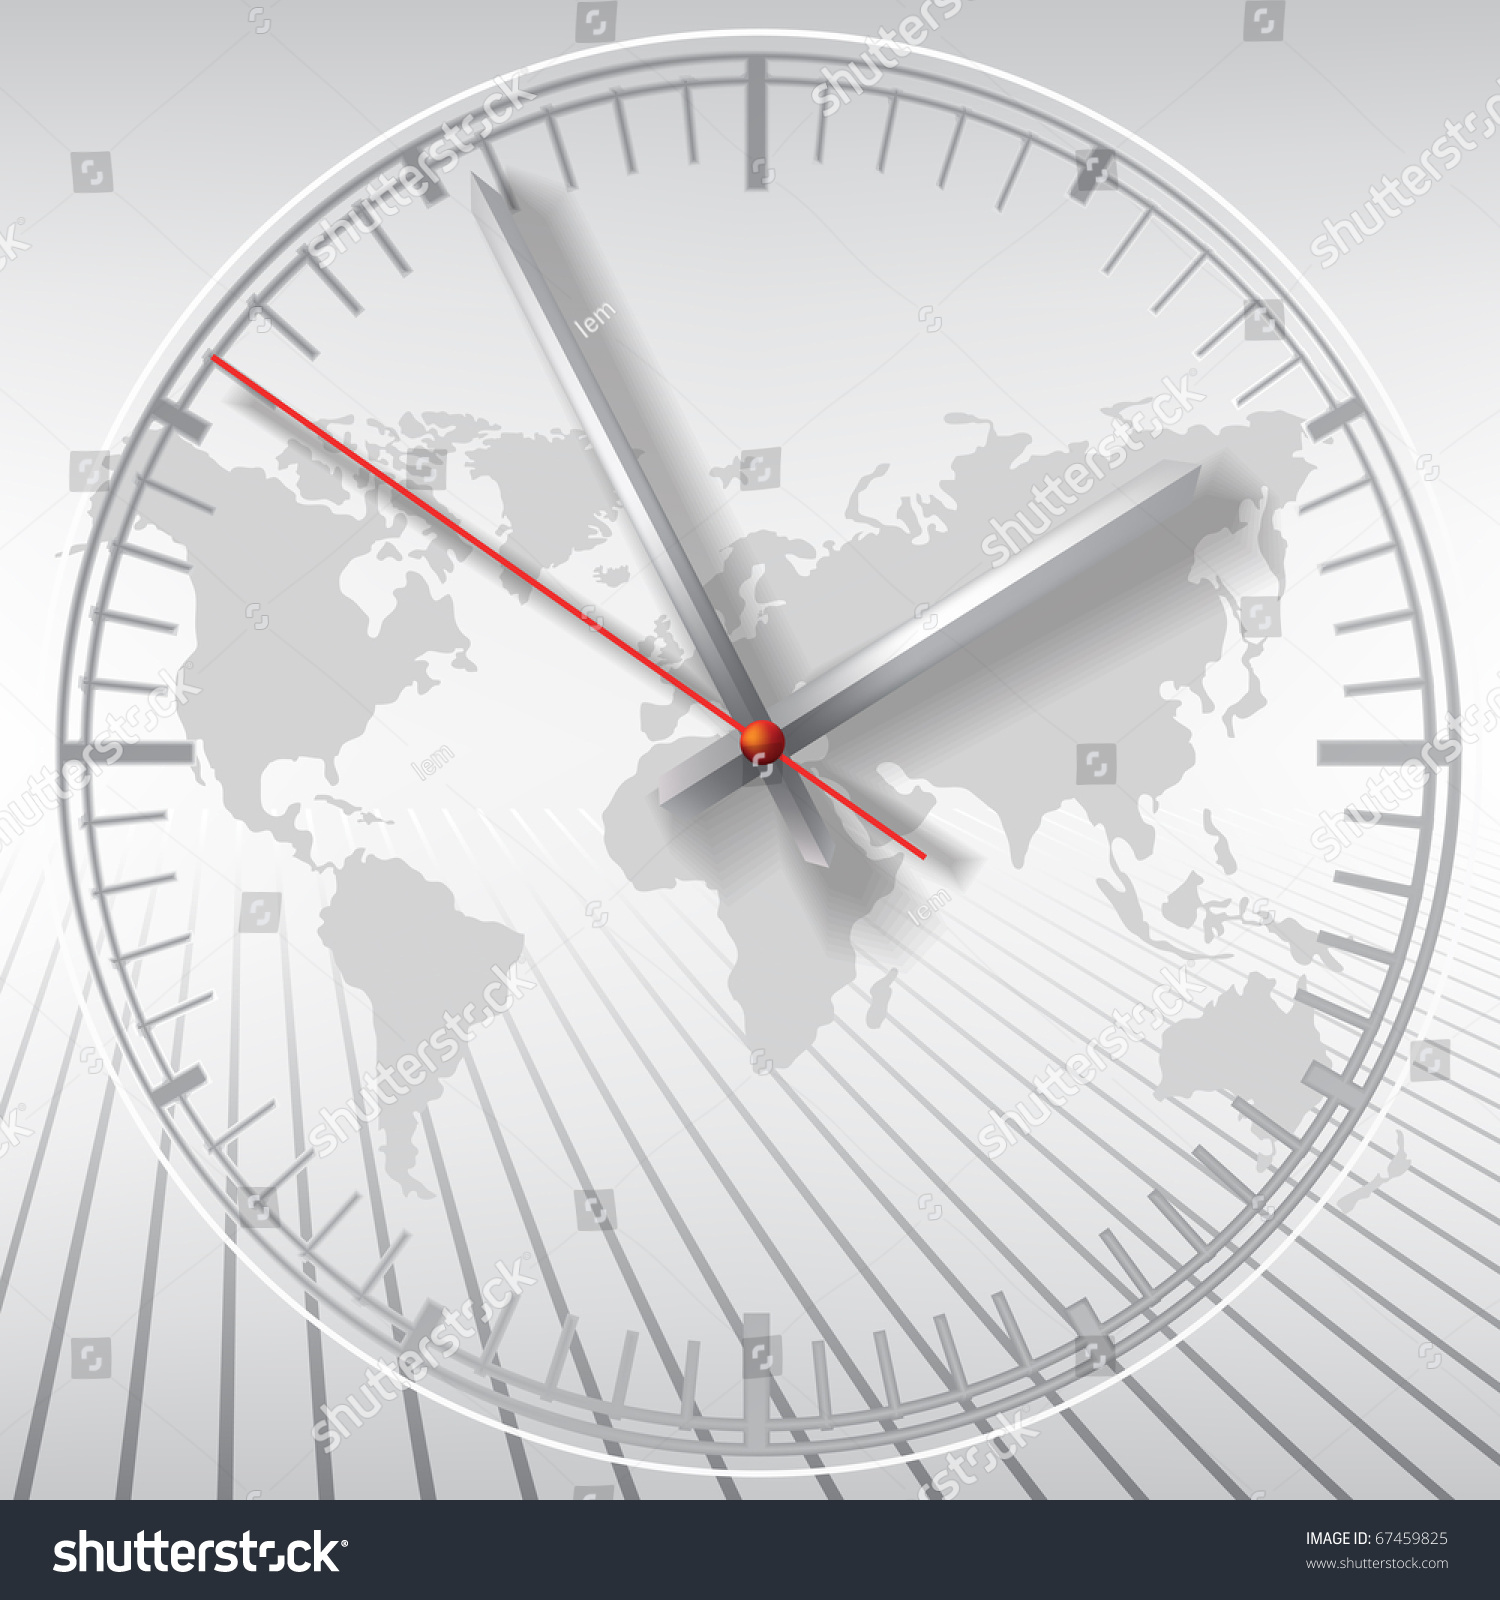 Grey clock on world map abstract stock vector 67459825 shutterstock gumiabroncs Images